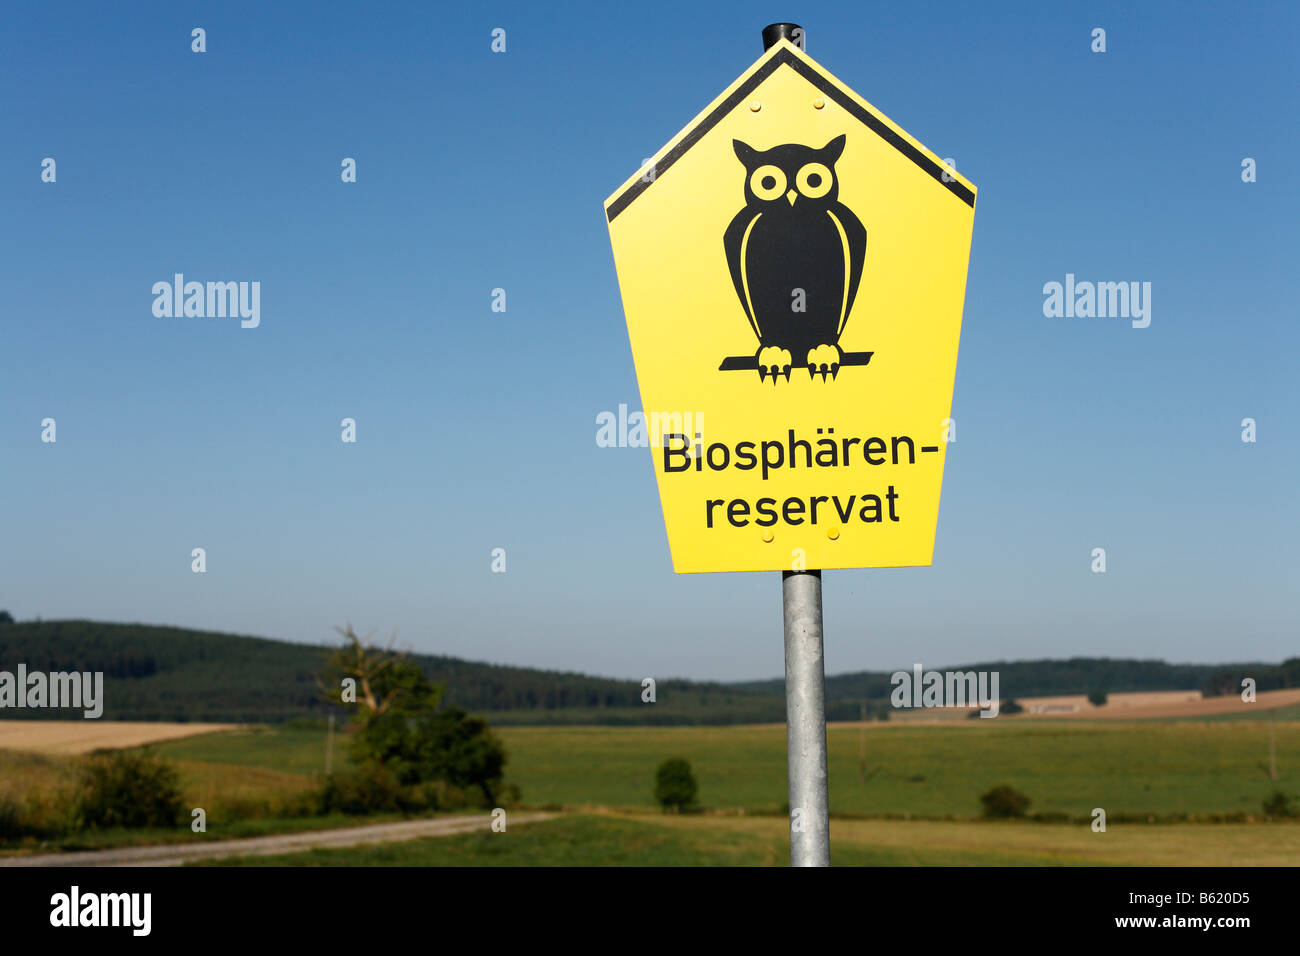 Yellow sign with a icon of a Owl designating a Biosphaerenreservat or Biosphere Reserver, Rhoen, Thuringia, Germany, - Stock Image